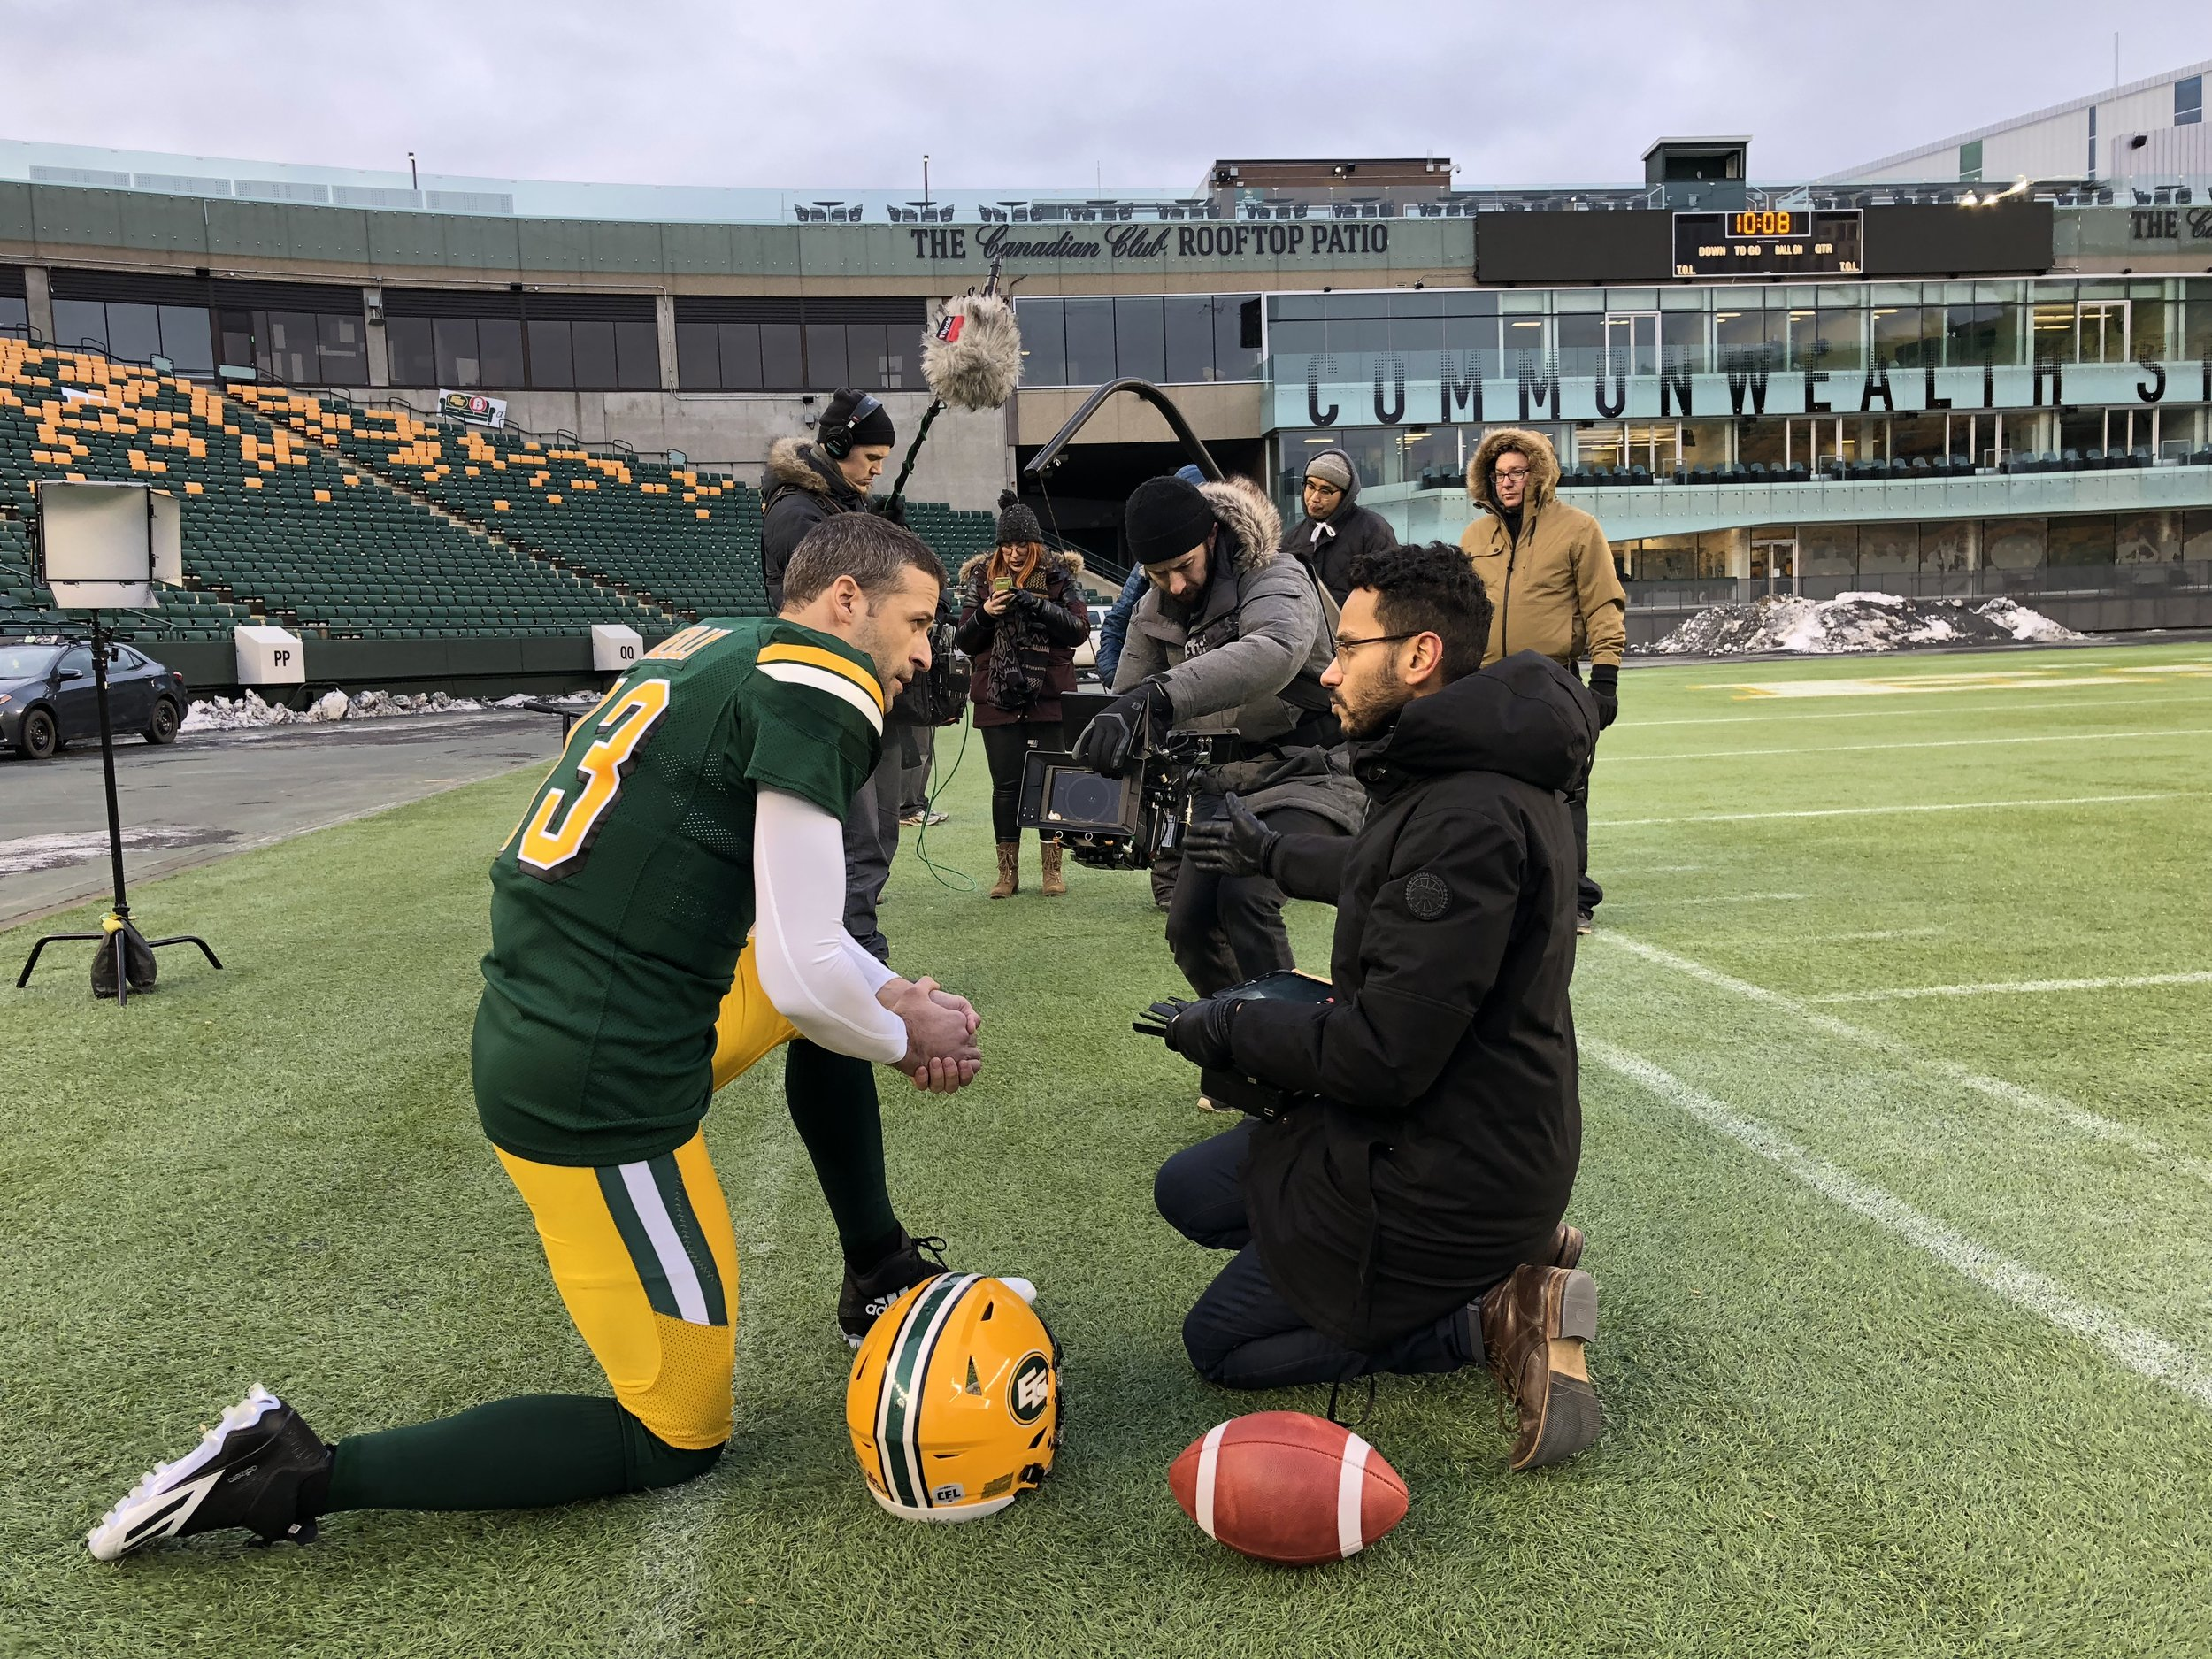 BTS at the Commonwealth with Mike Reilly, Edmonton Eskimos player and CFL's 2015 MVP .